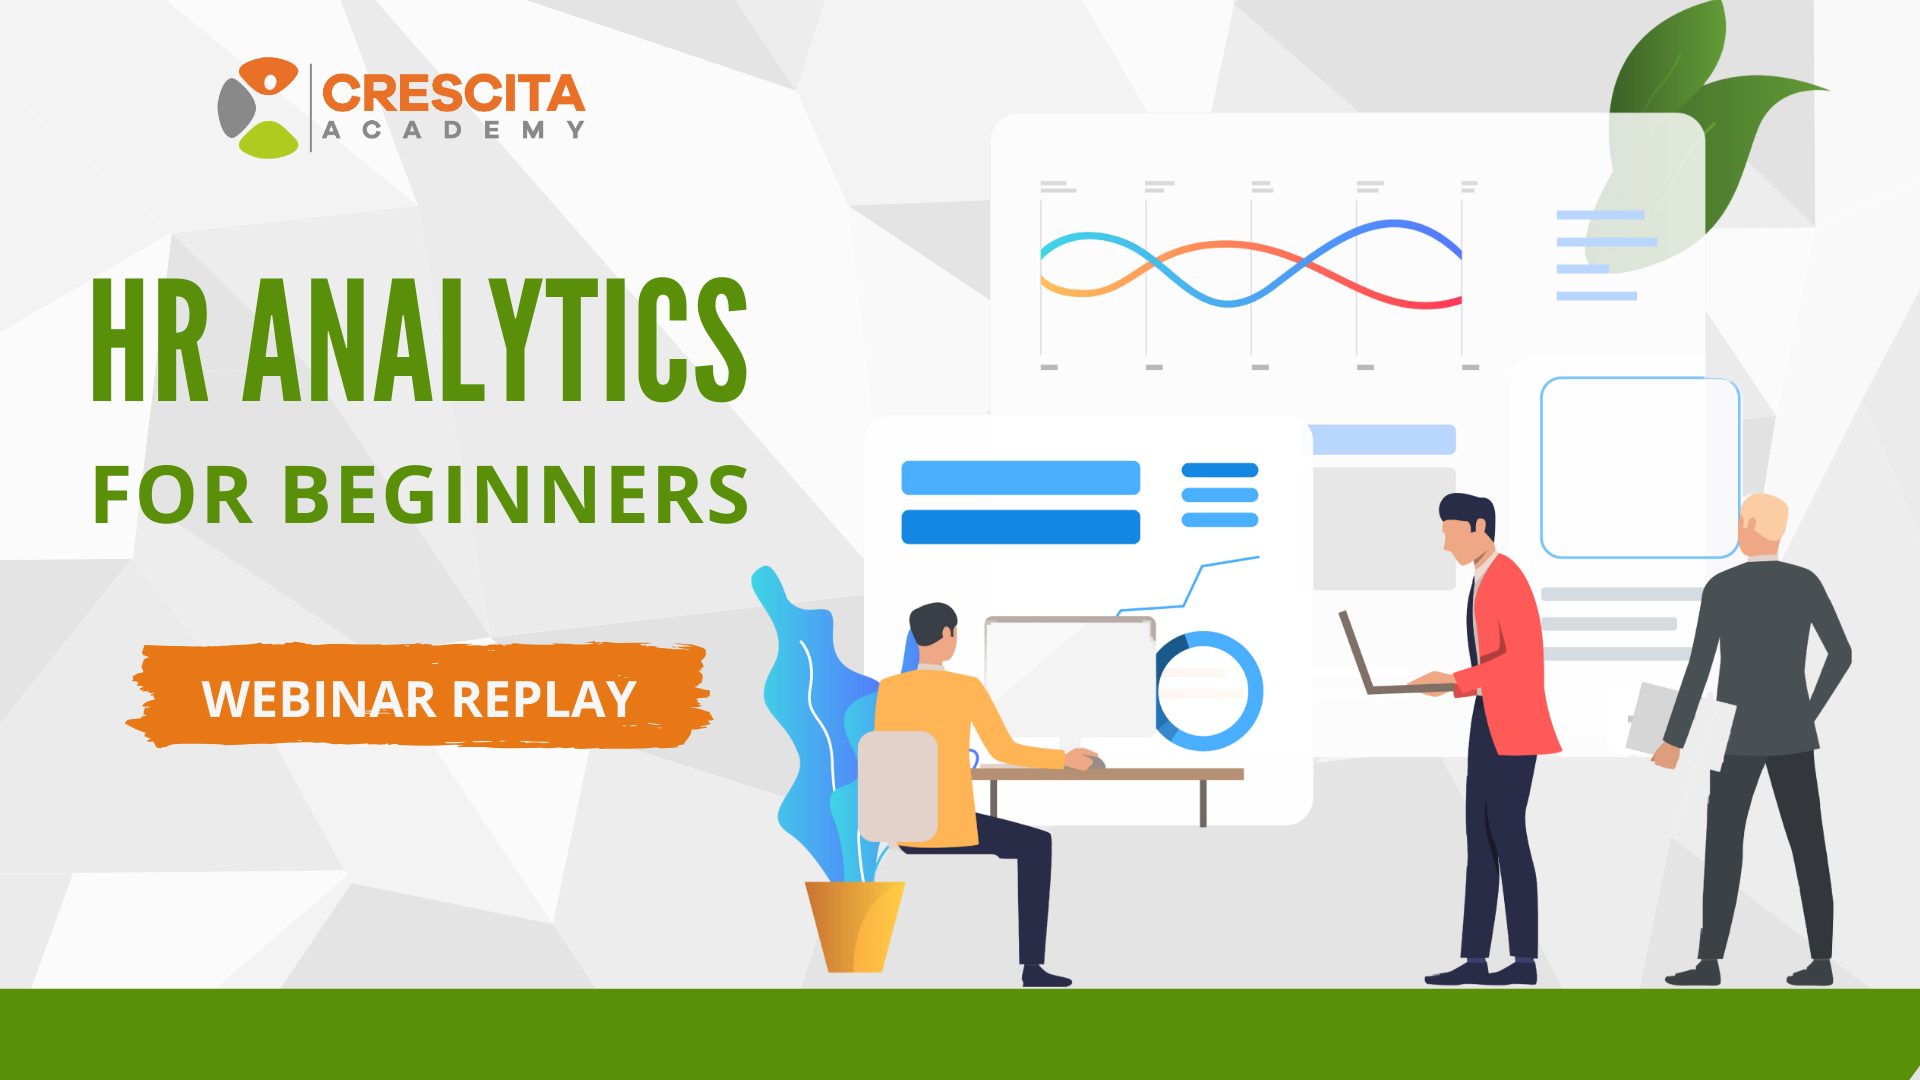 HR Analytics For Beginners - Webinar Replay